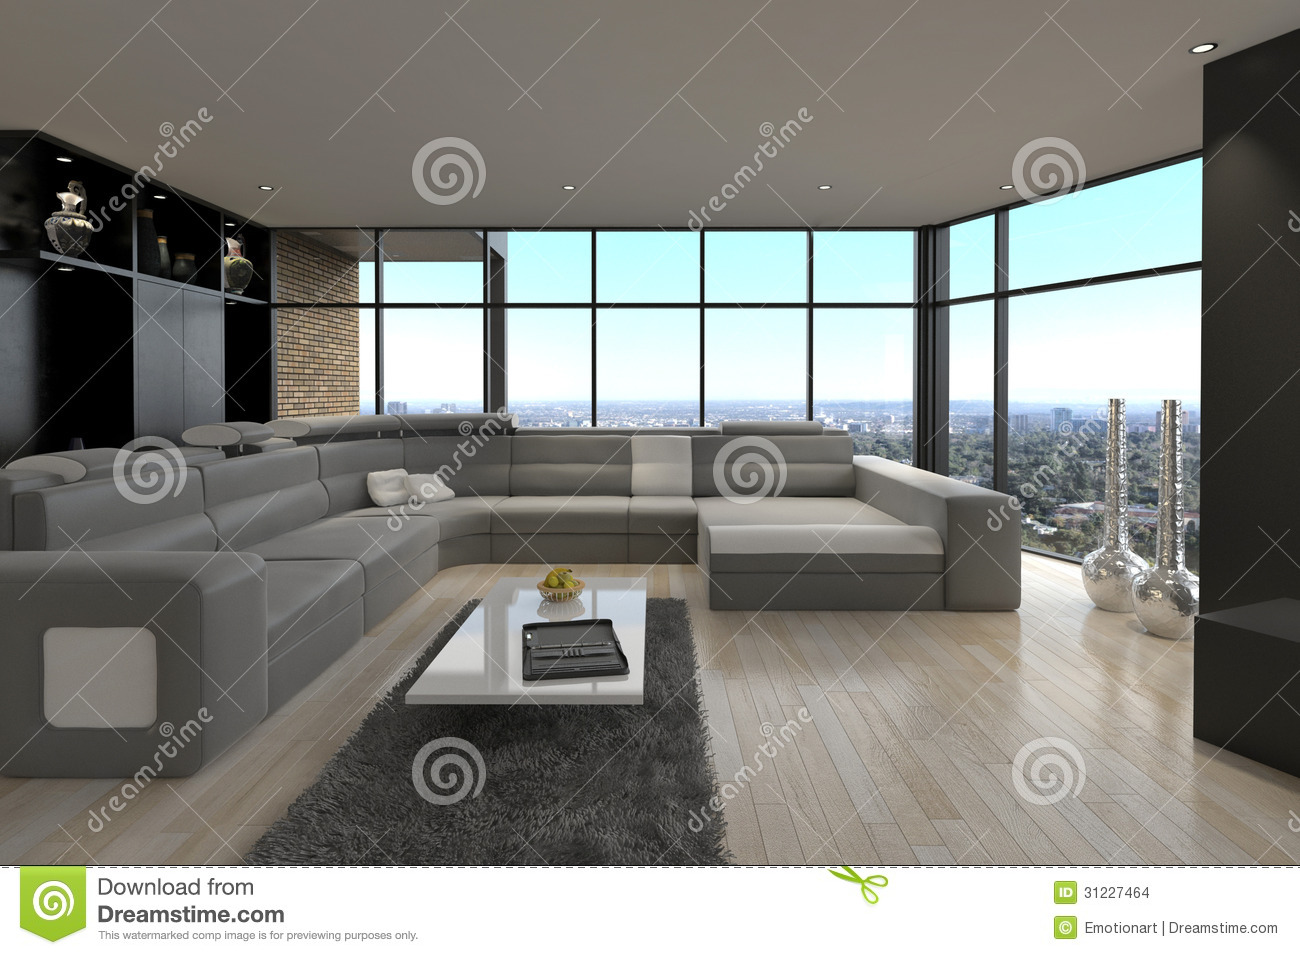 Salon moderne impressionnant de grenier int rieur d 39 architecture photo stock image 31227464 for Interieur salon moderne